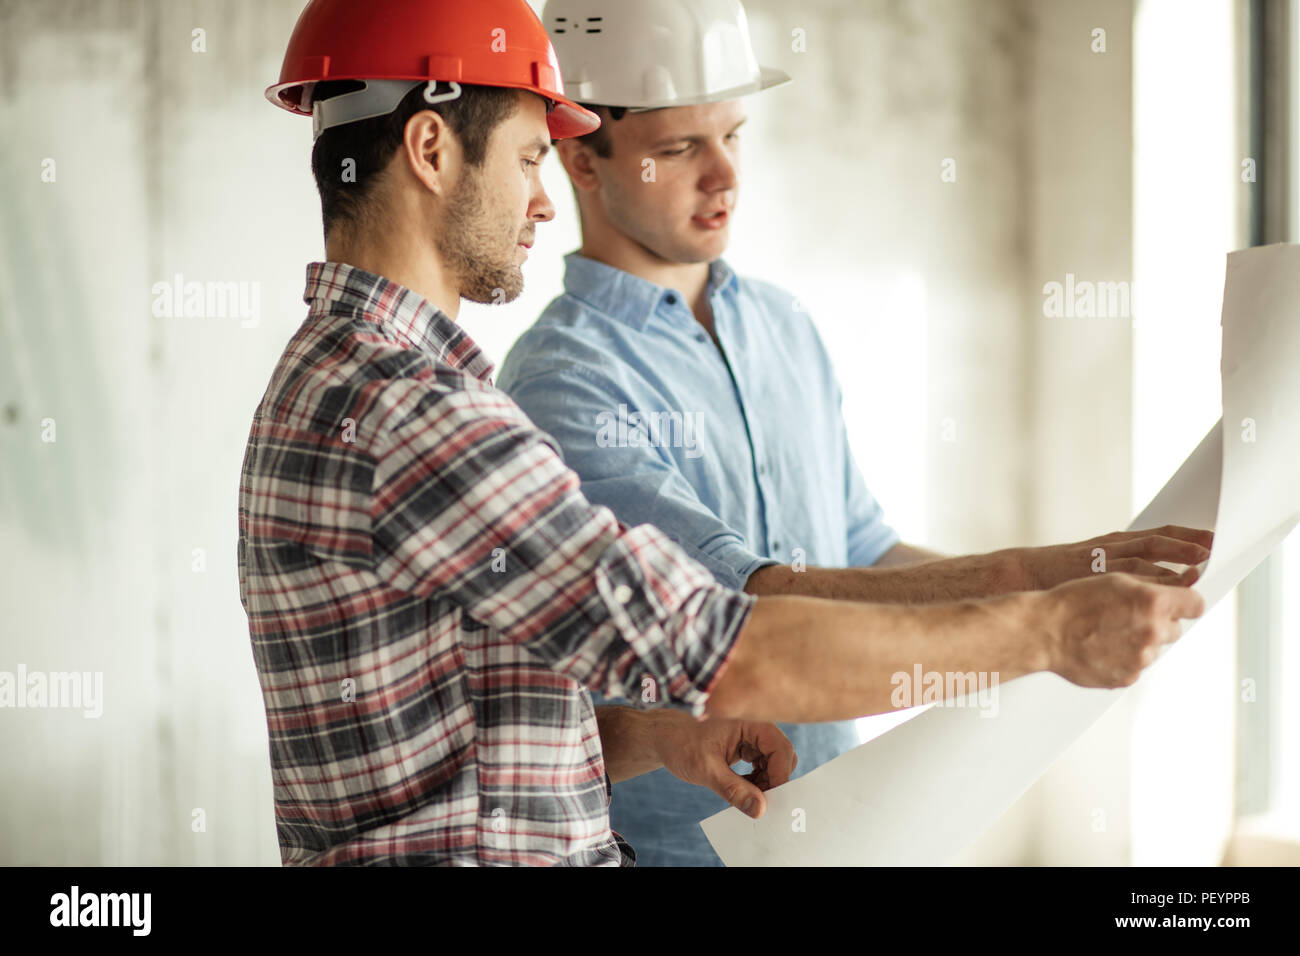 rebuilding operation. refurbishment work.perspective project for development of a city - Stock Image